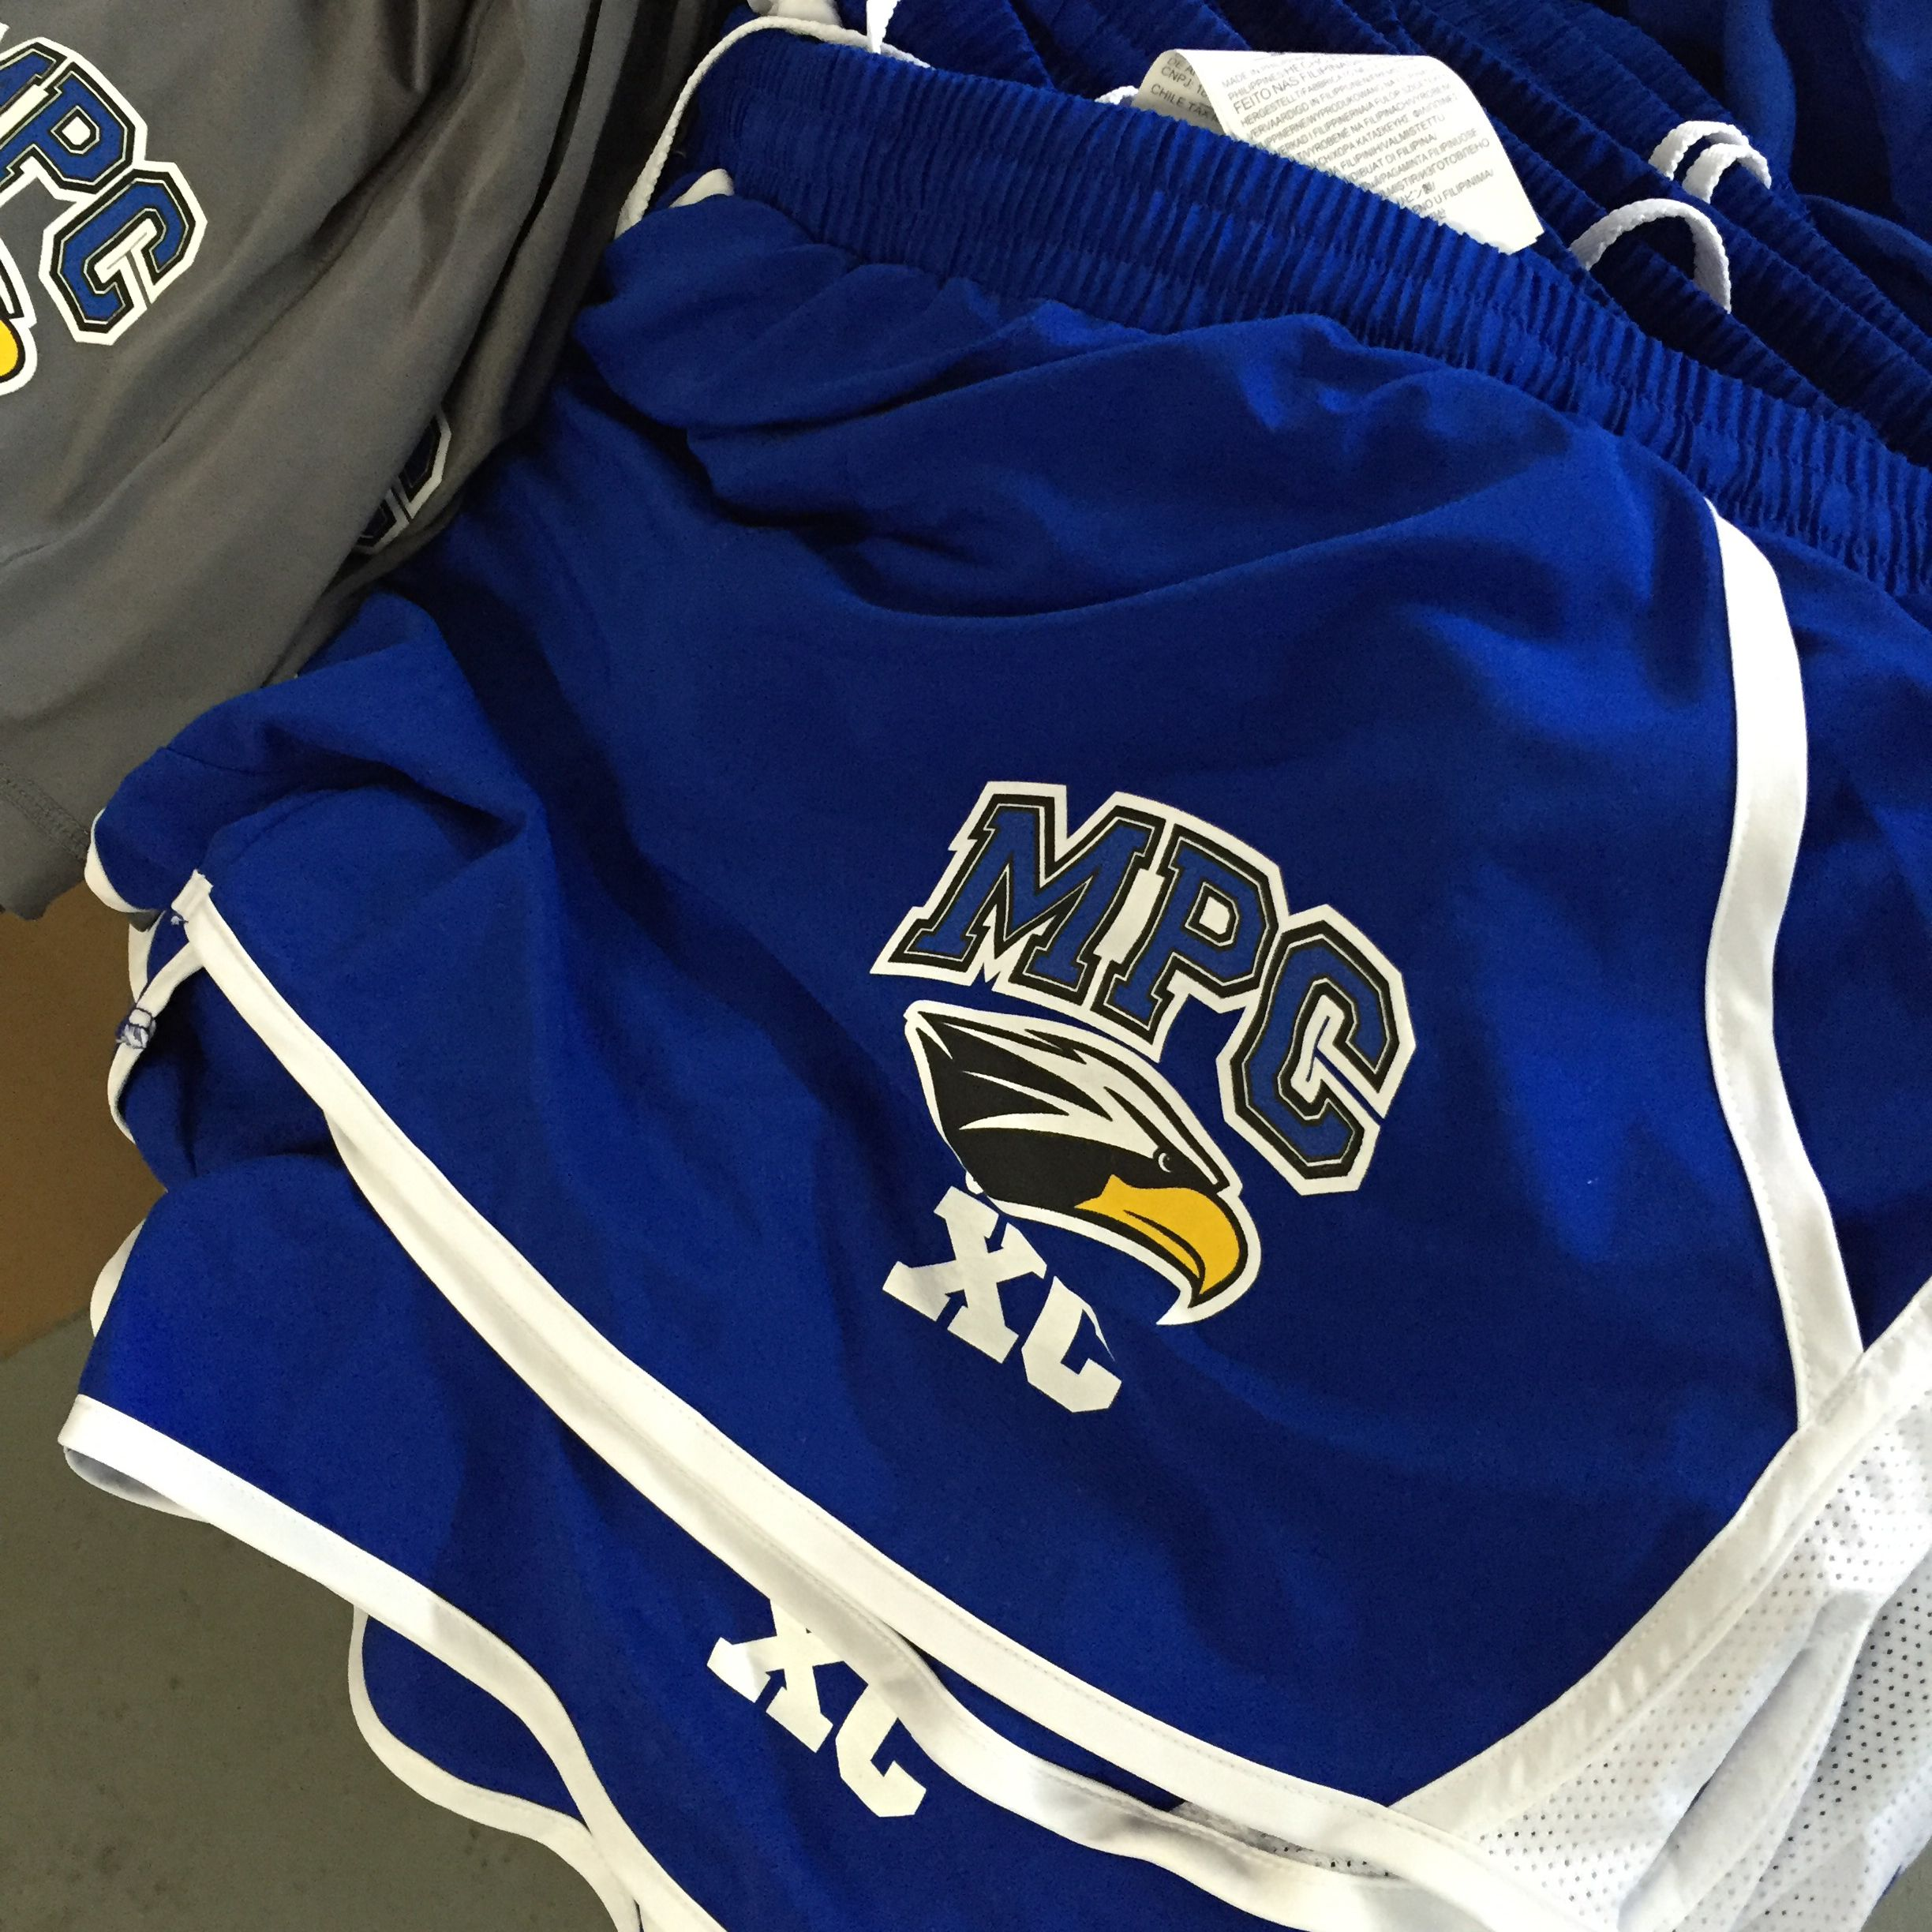 We print more than just shirts! Custom Athletic shorts for a school.